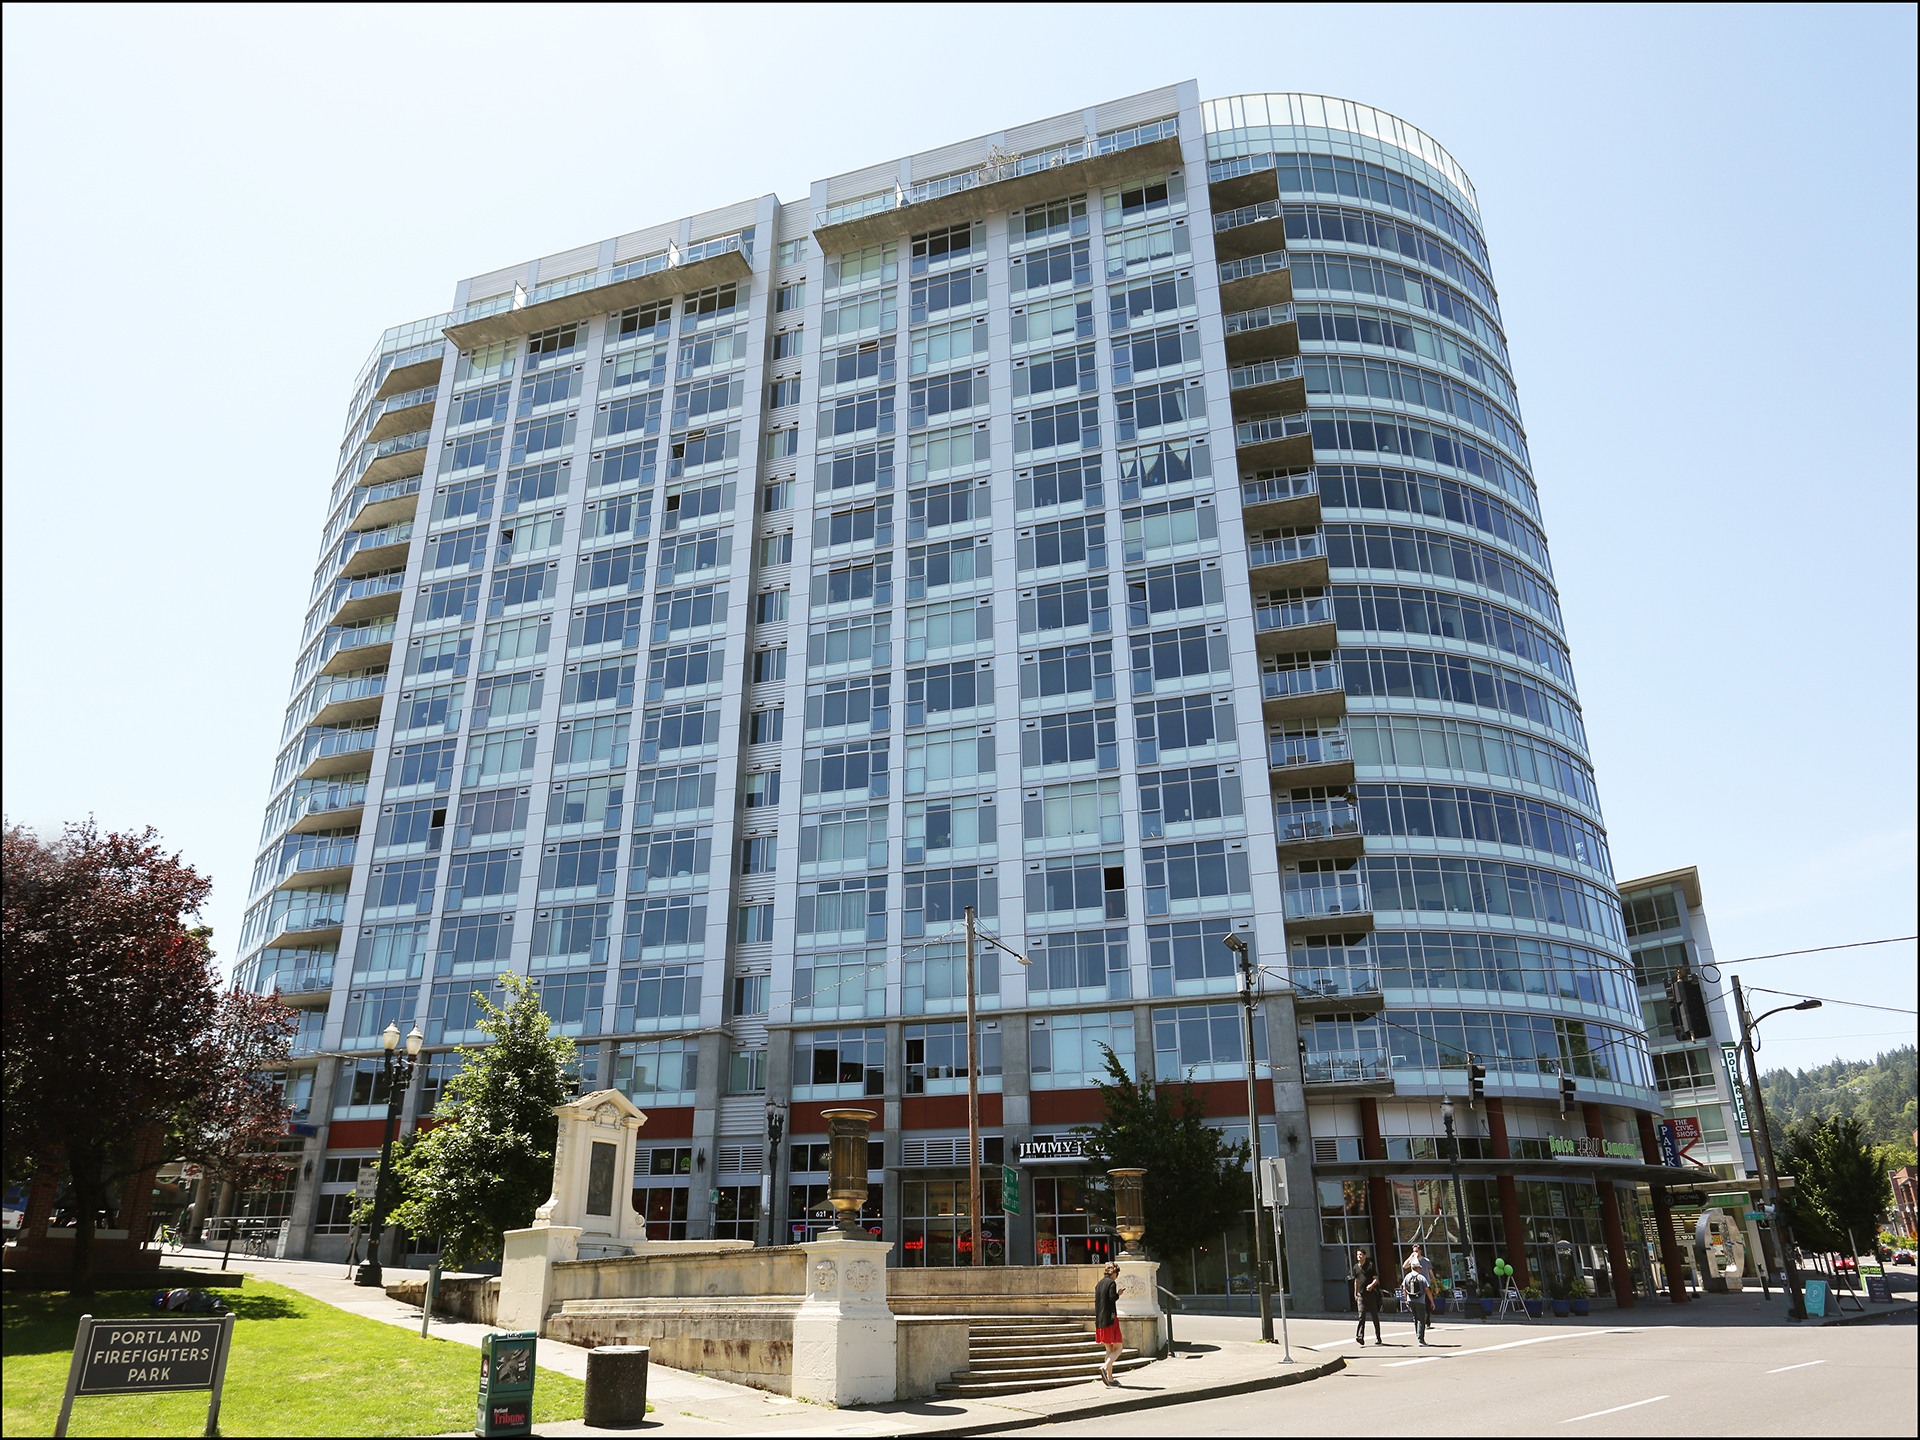 1926 W Burnside #130  Civic Condo  SOLD $325,000